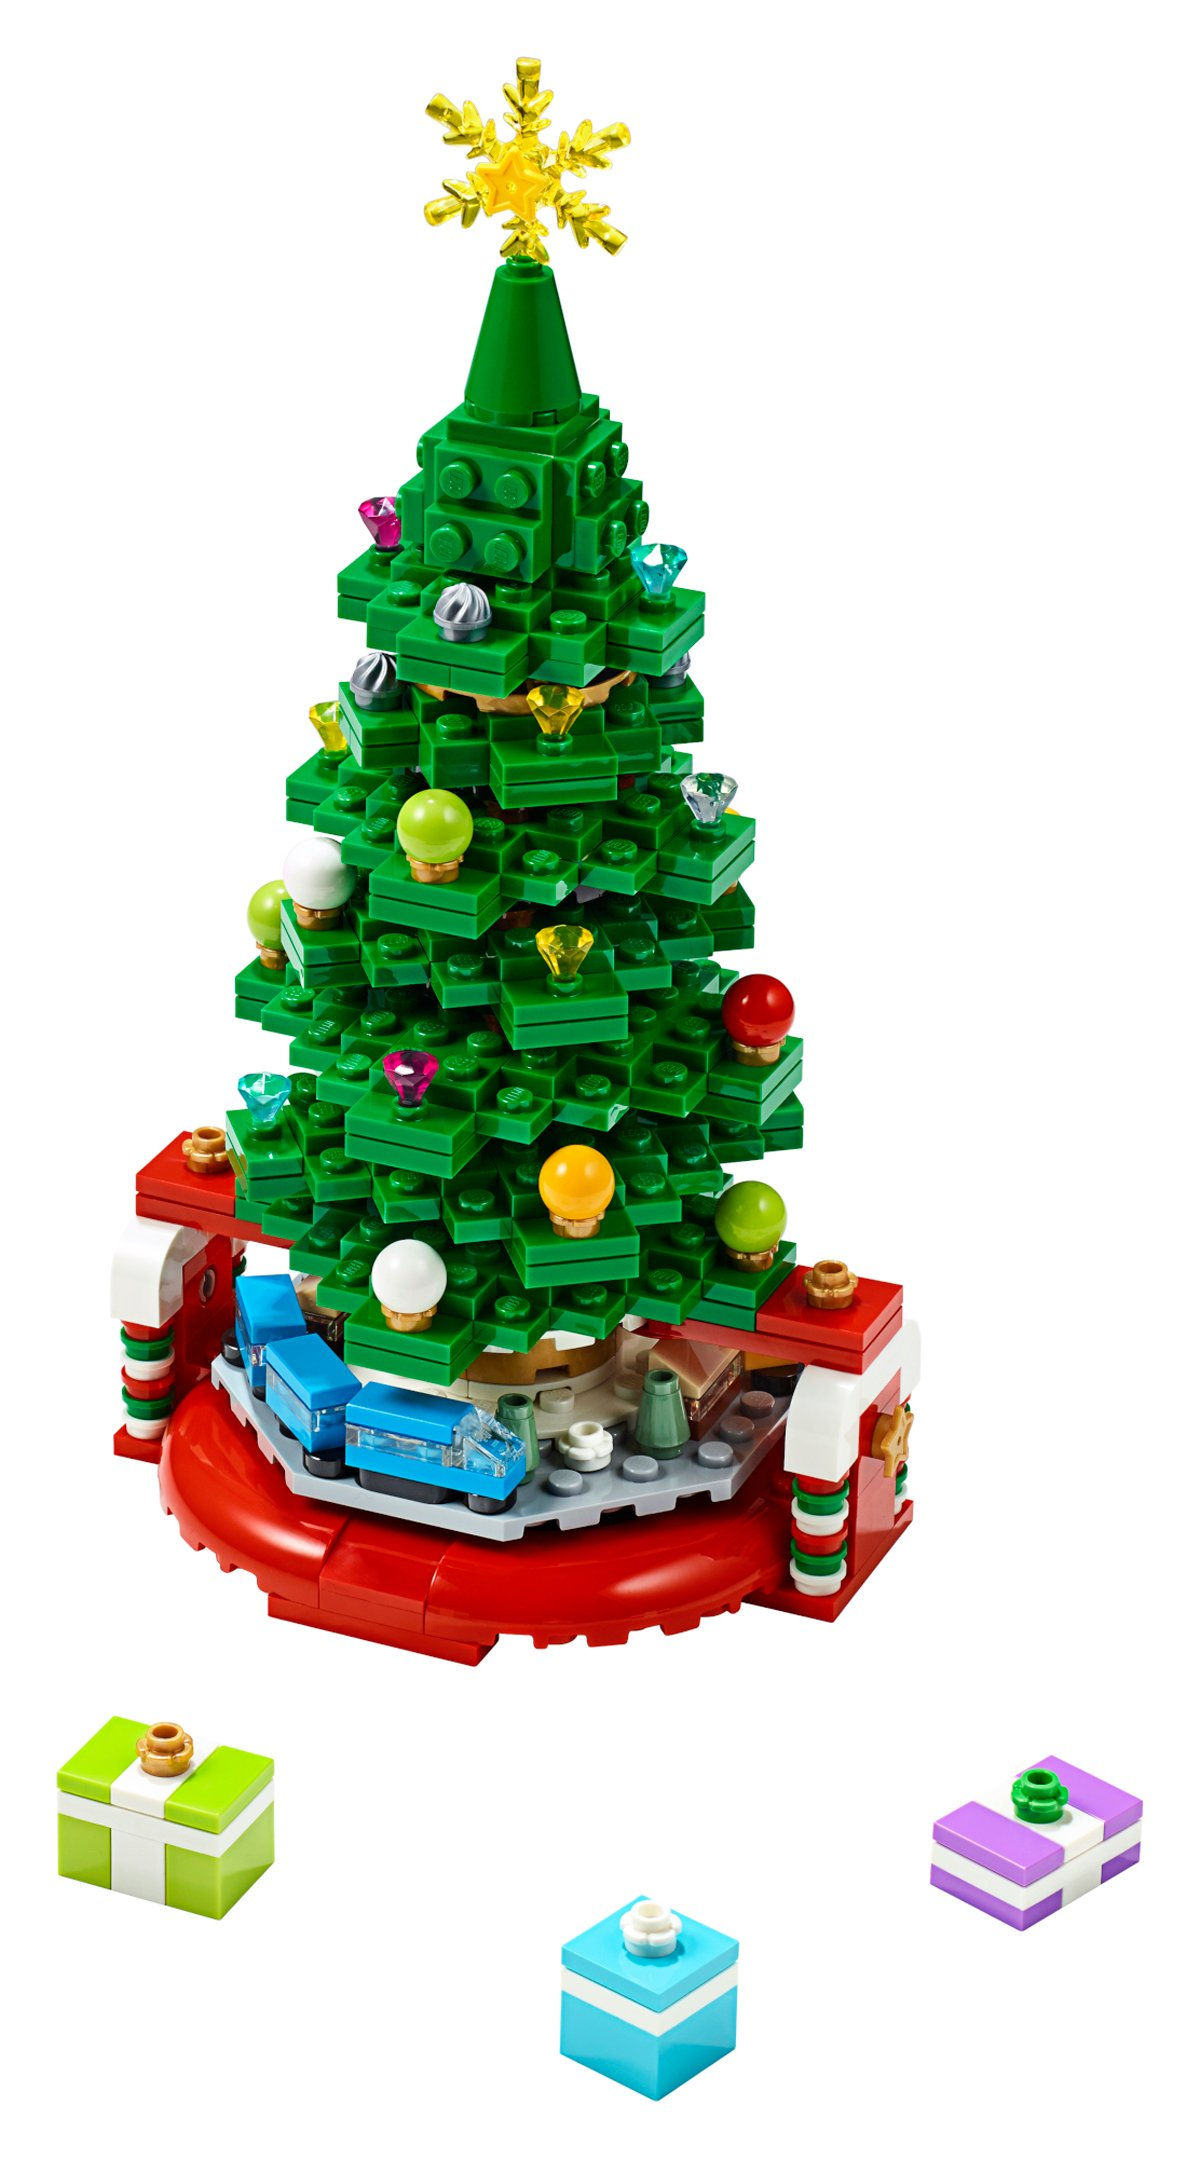 Free Gift With Purchase Christmas 2020 Promotional Archives   The Brick Show